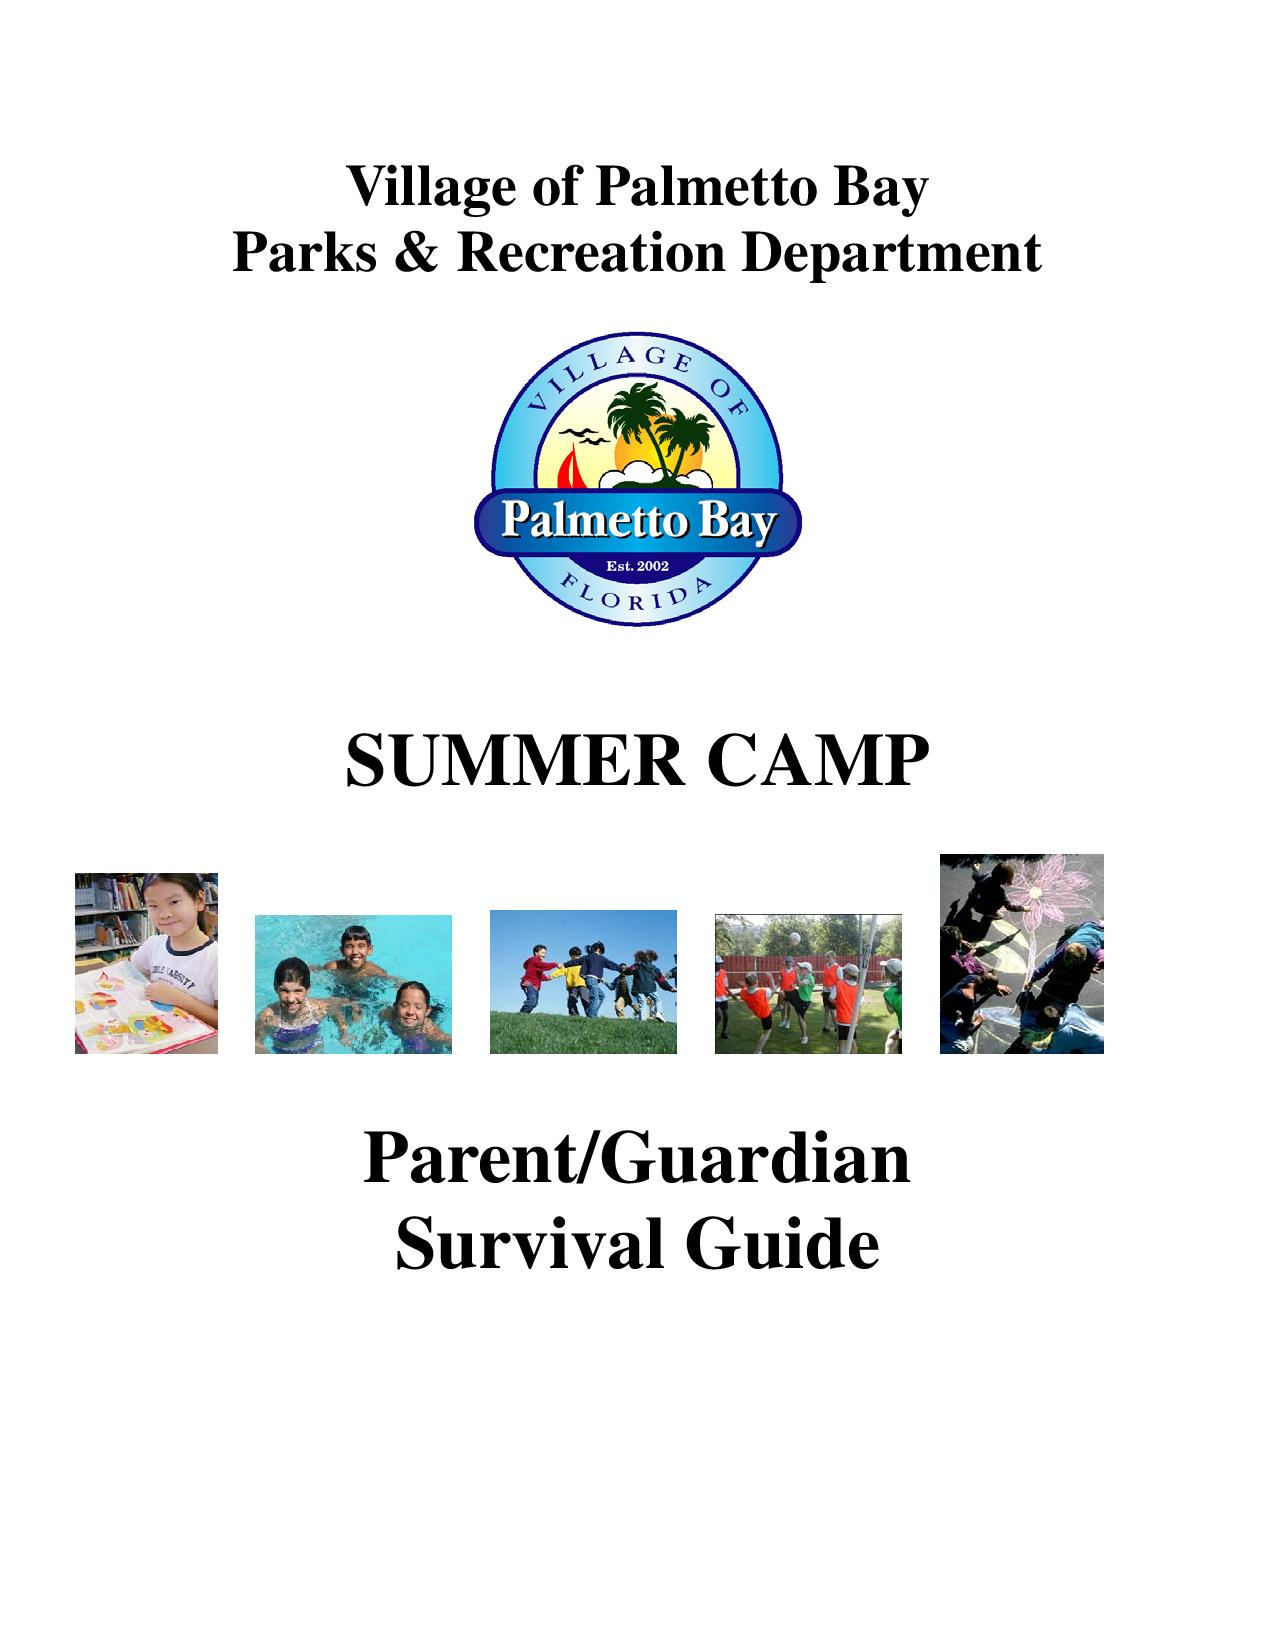 Summer-2018 parent survival guide-page-001